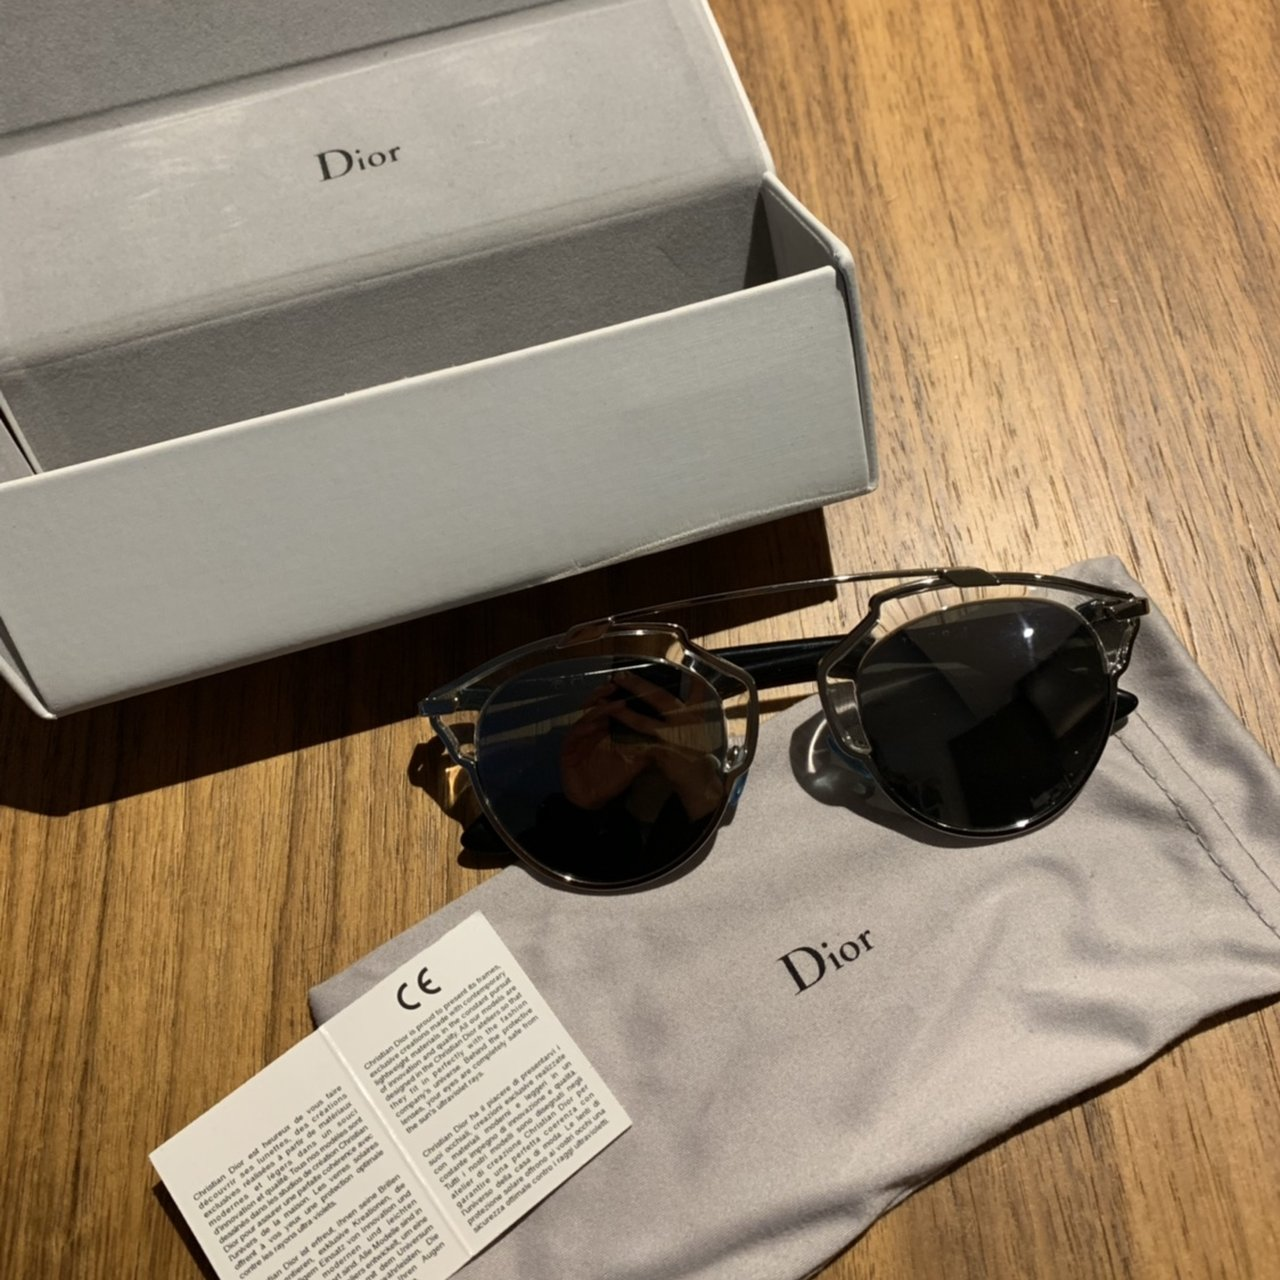 c1cb4914b6b98 DIOR SO REAL Worn - in good condition Comes w full packaging - Depop